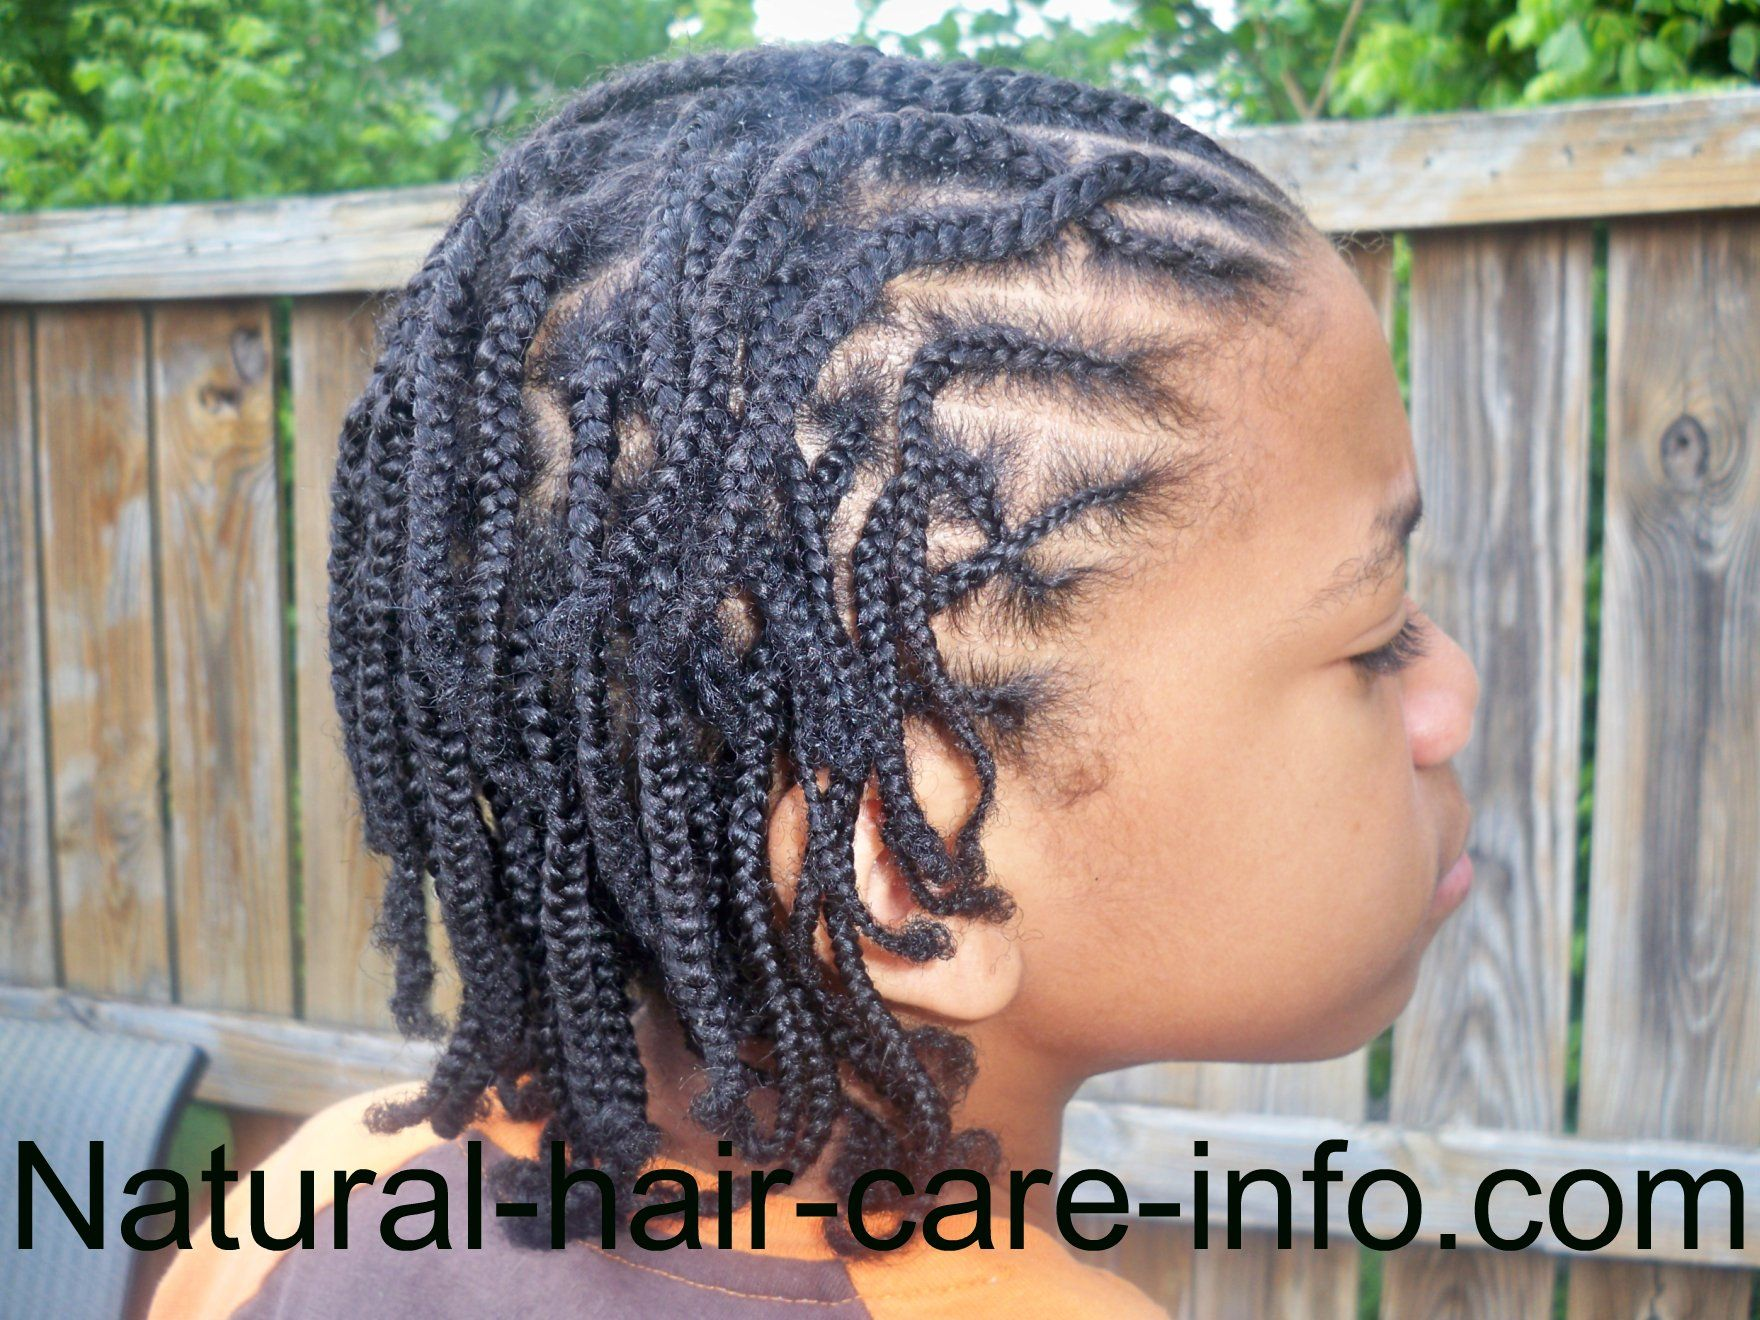 Marvelous 1000 Ideas About Braids For Boys On Pinterest Boy Braids Braid Hairstyles For Men Maxibearus